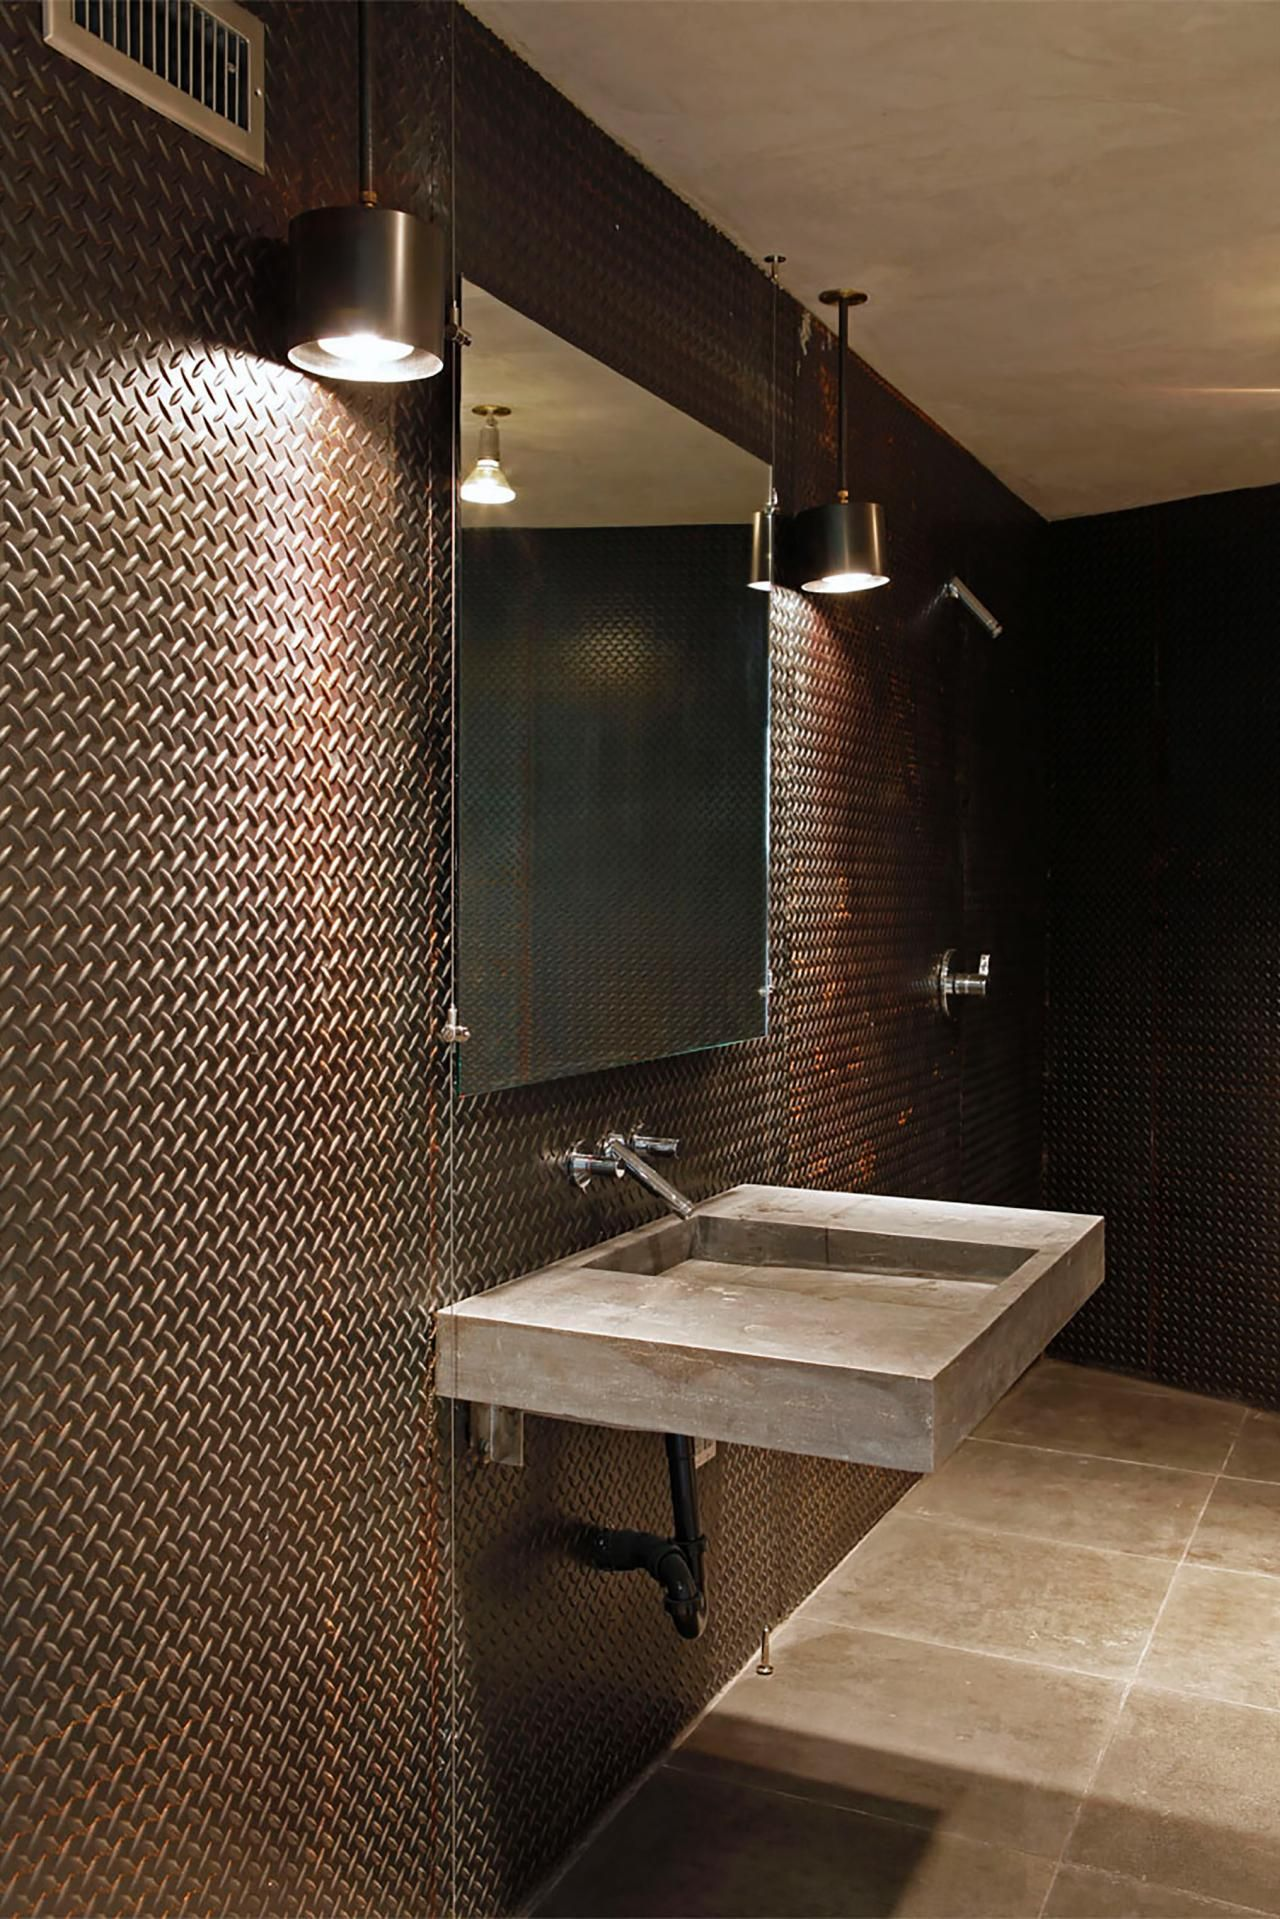 The Guest Bathroom Features Walls Lined In Blackened Steel